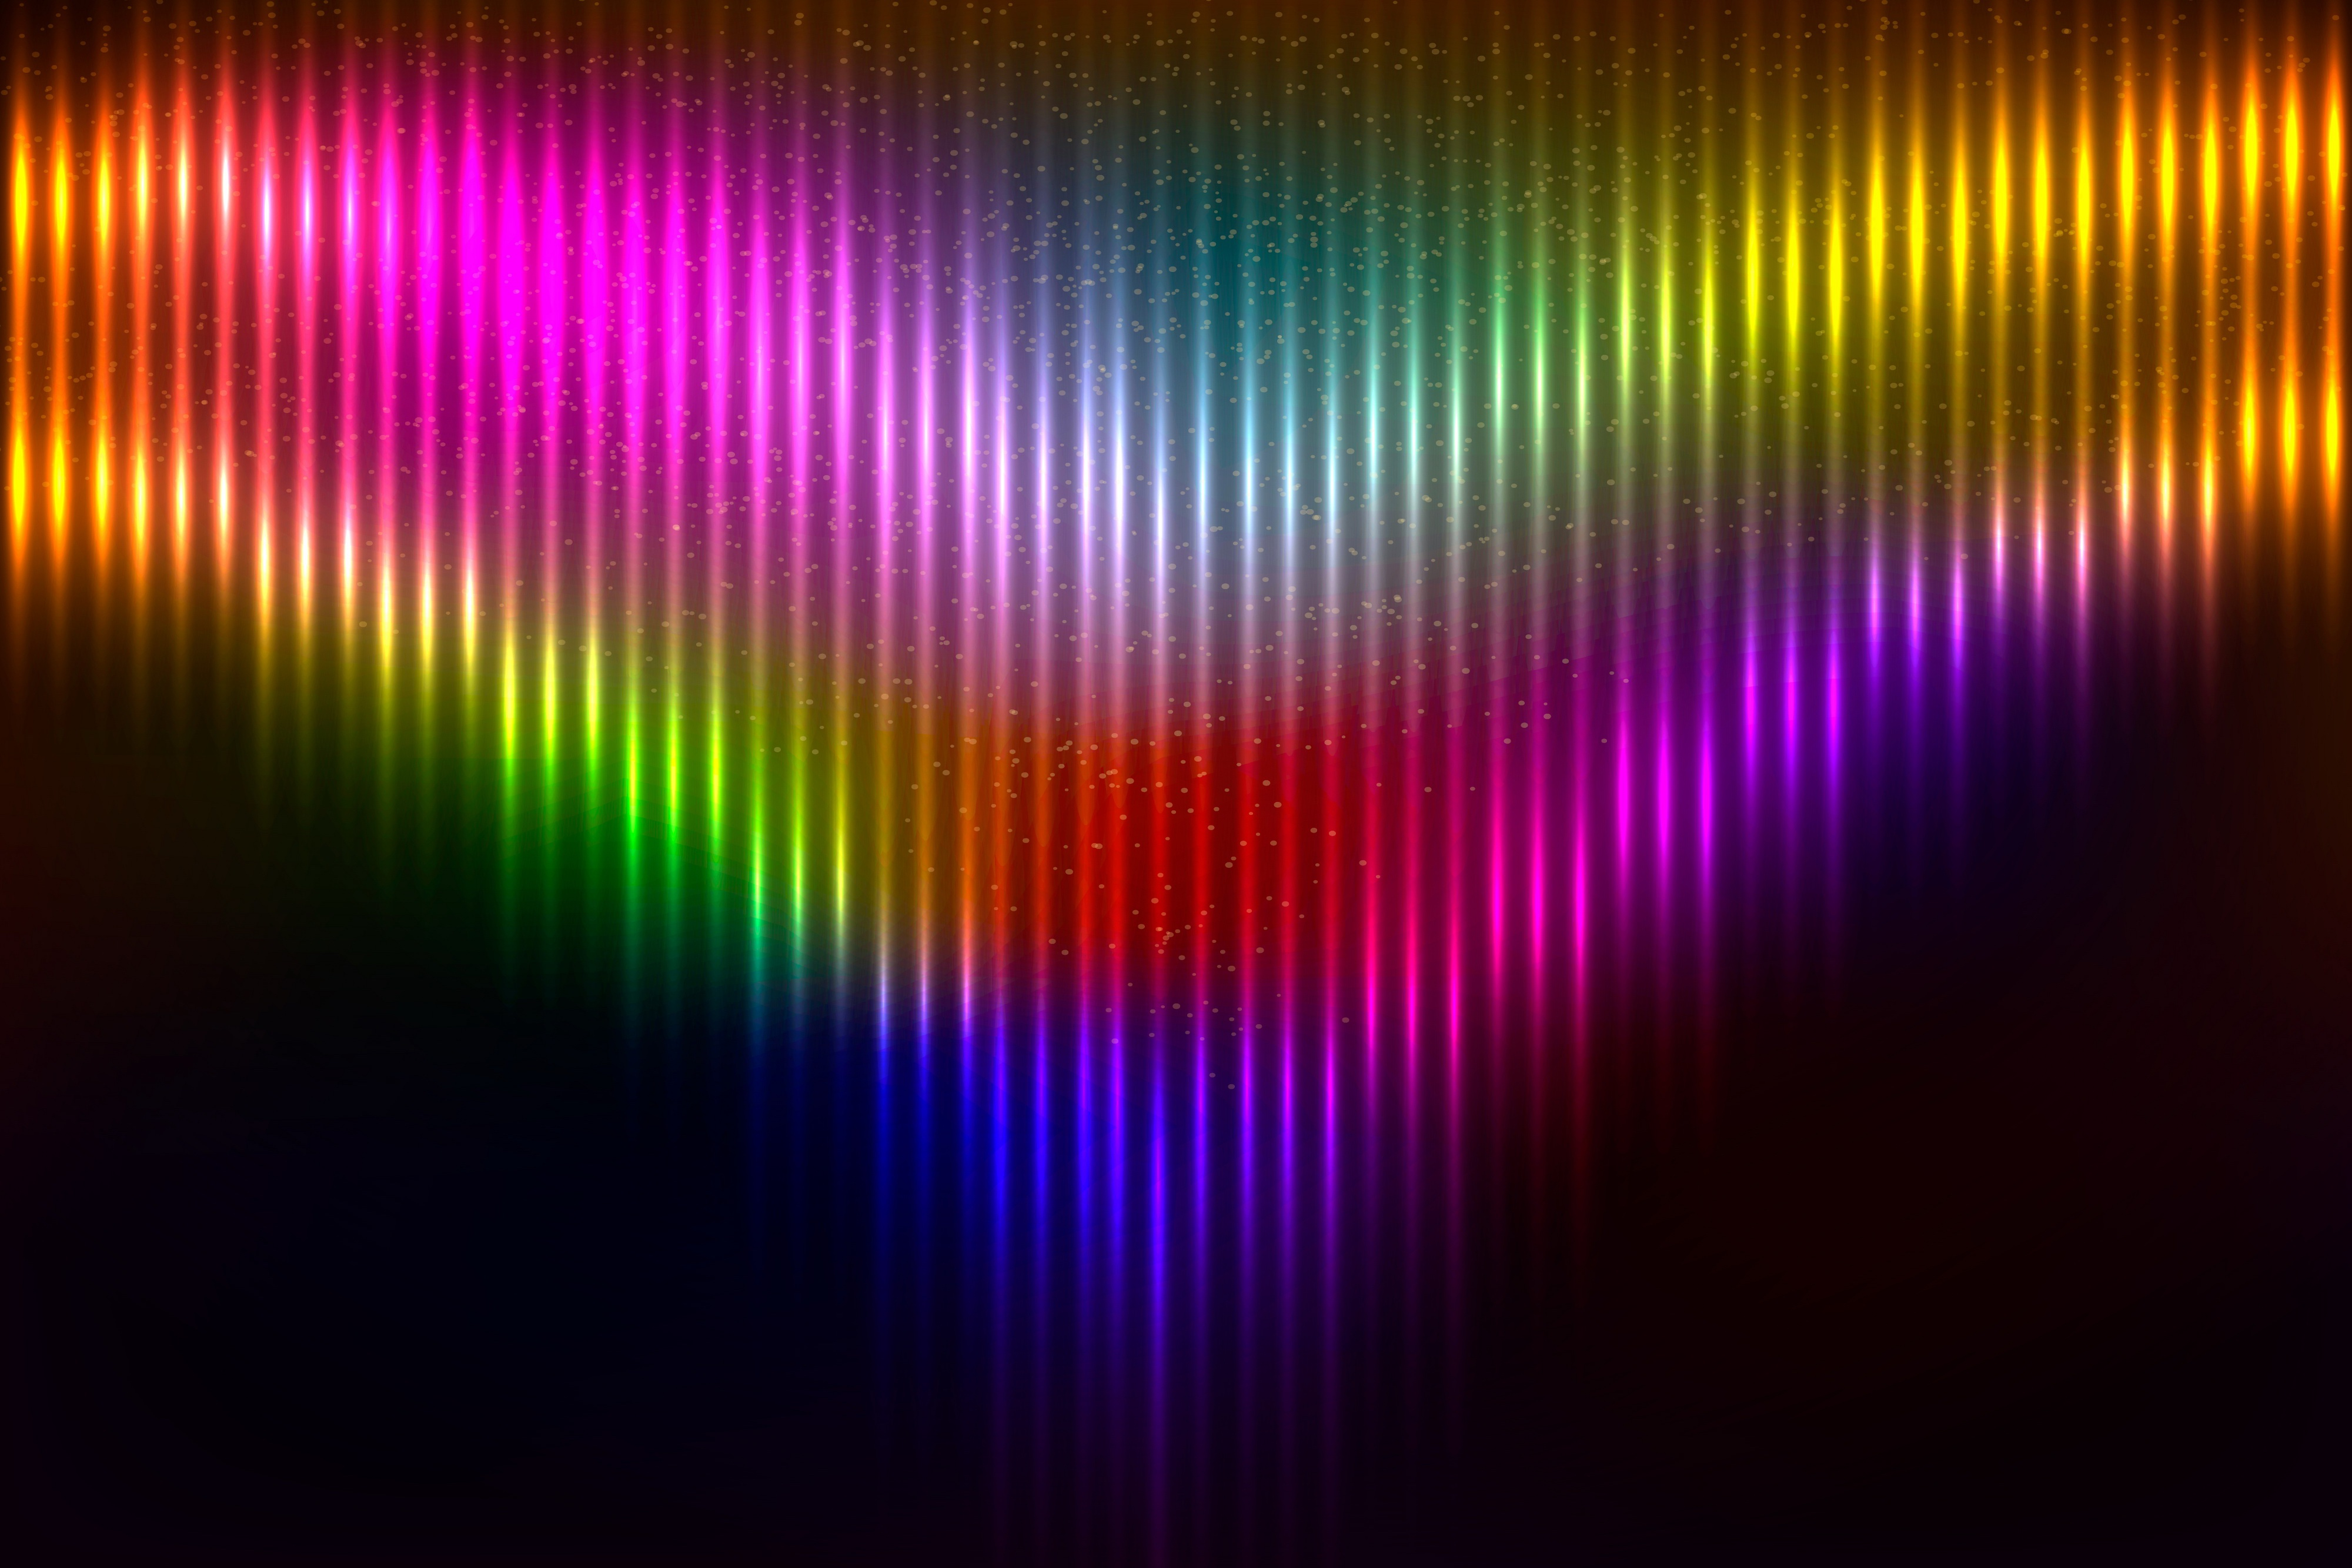 Colors 4k Ultra HD Wallpaper | Background Image ...